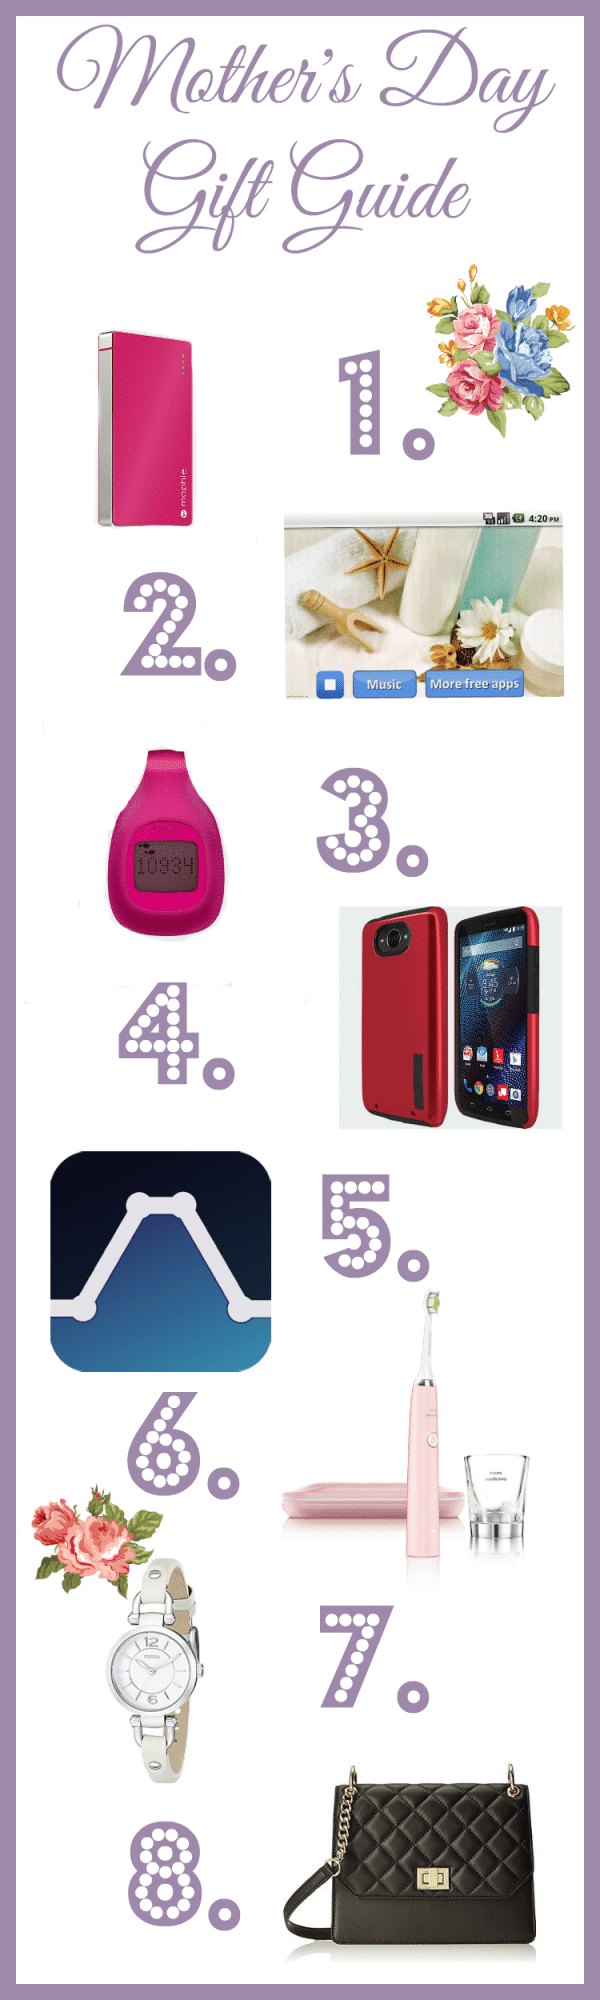 Mother's Day Gift Guide from cupcakesandcrinoline.com #ad #VZWBuzz